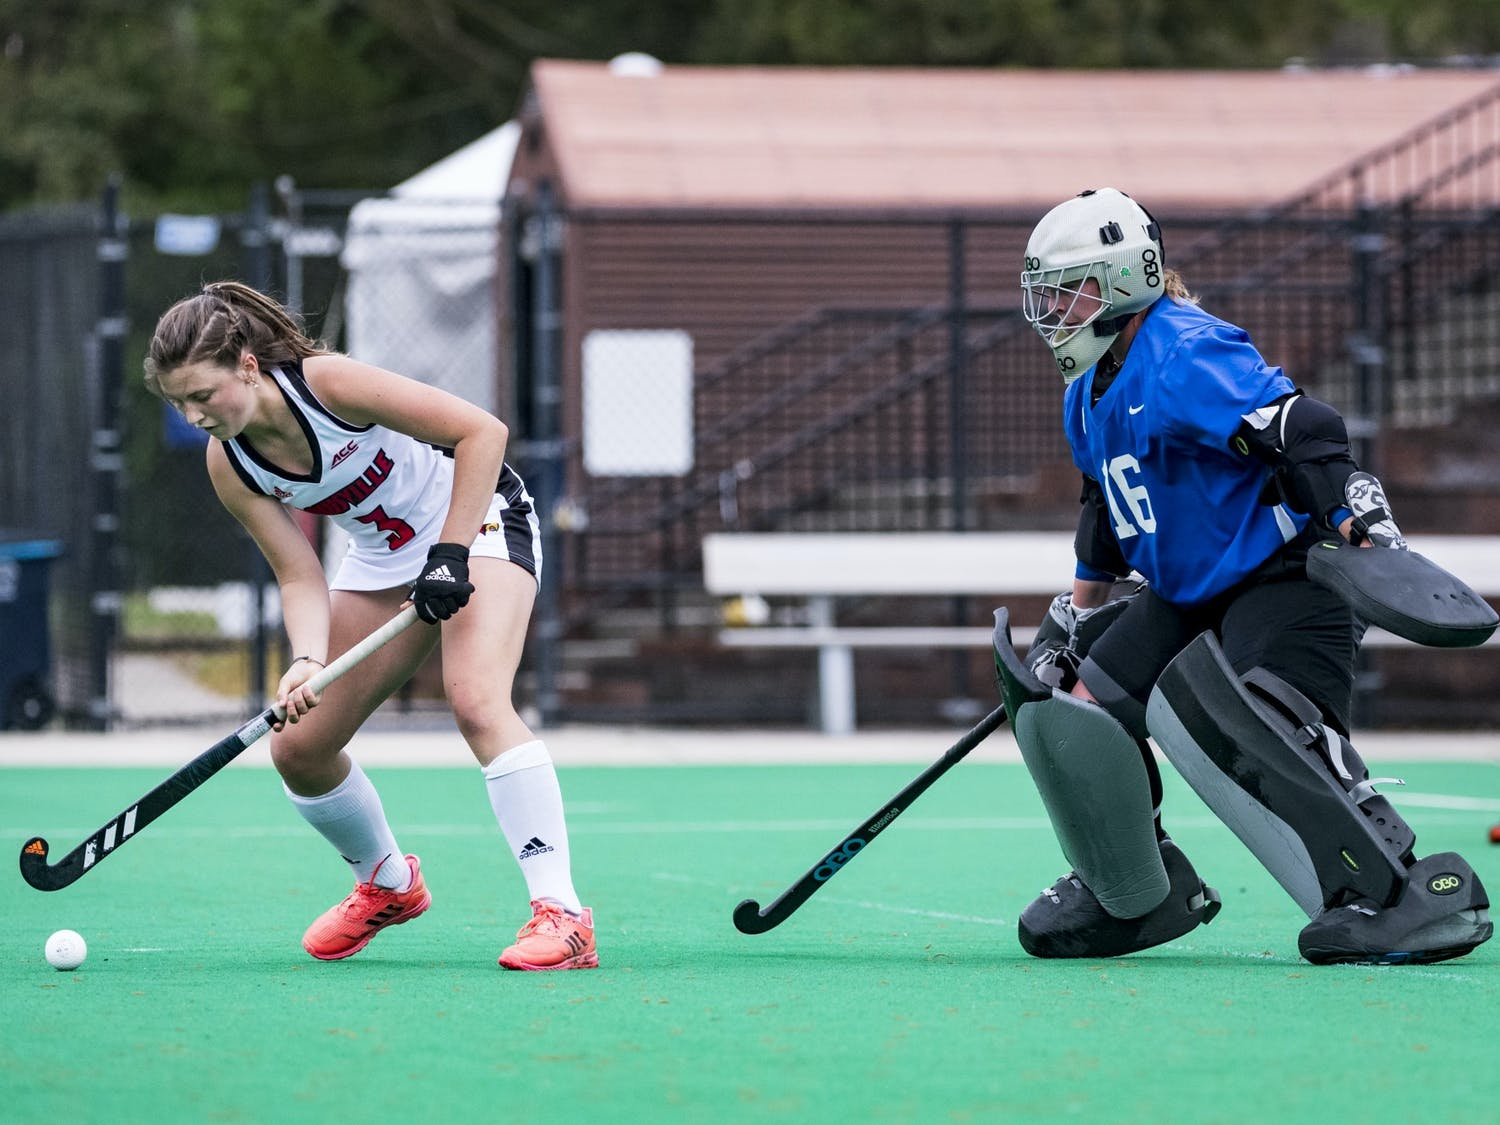 Goalie Piper Hampsch recorded five saves against Wake Forest.